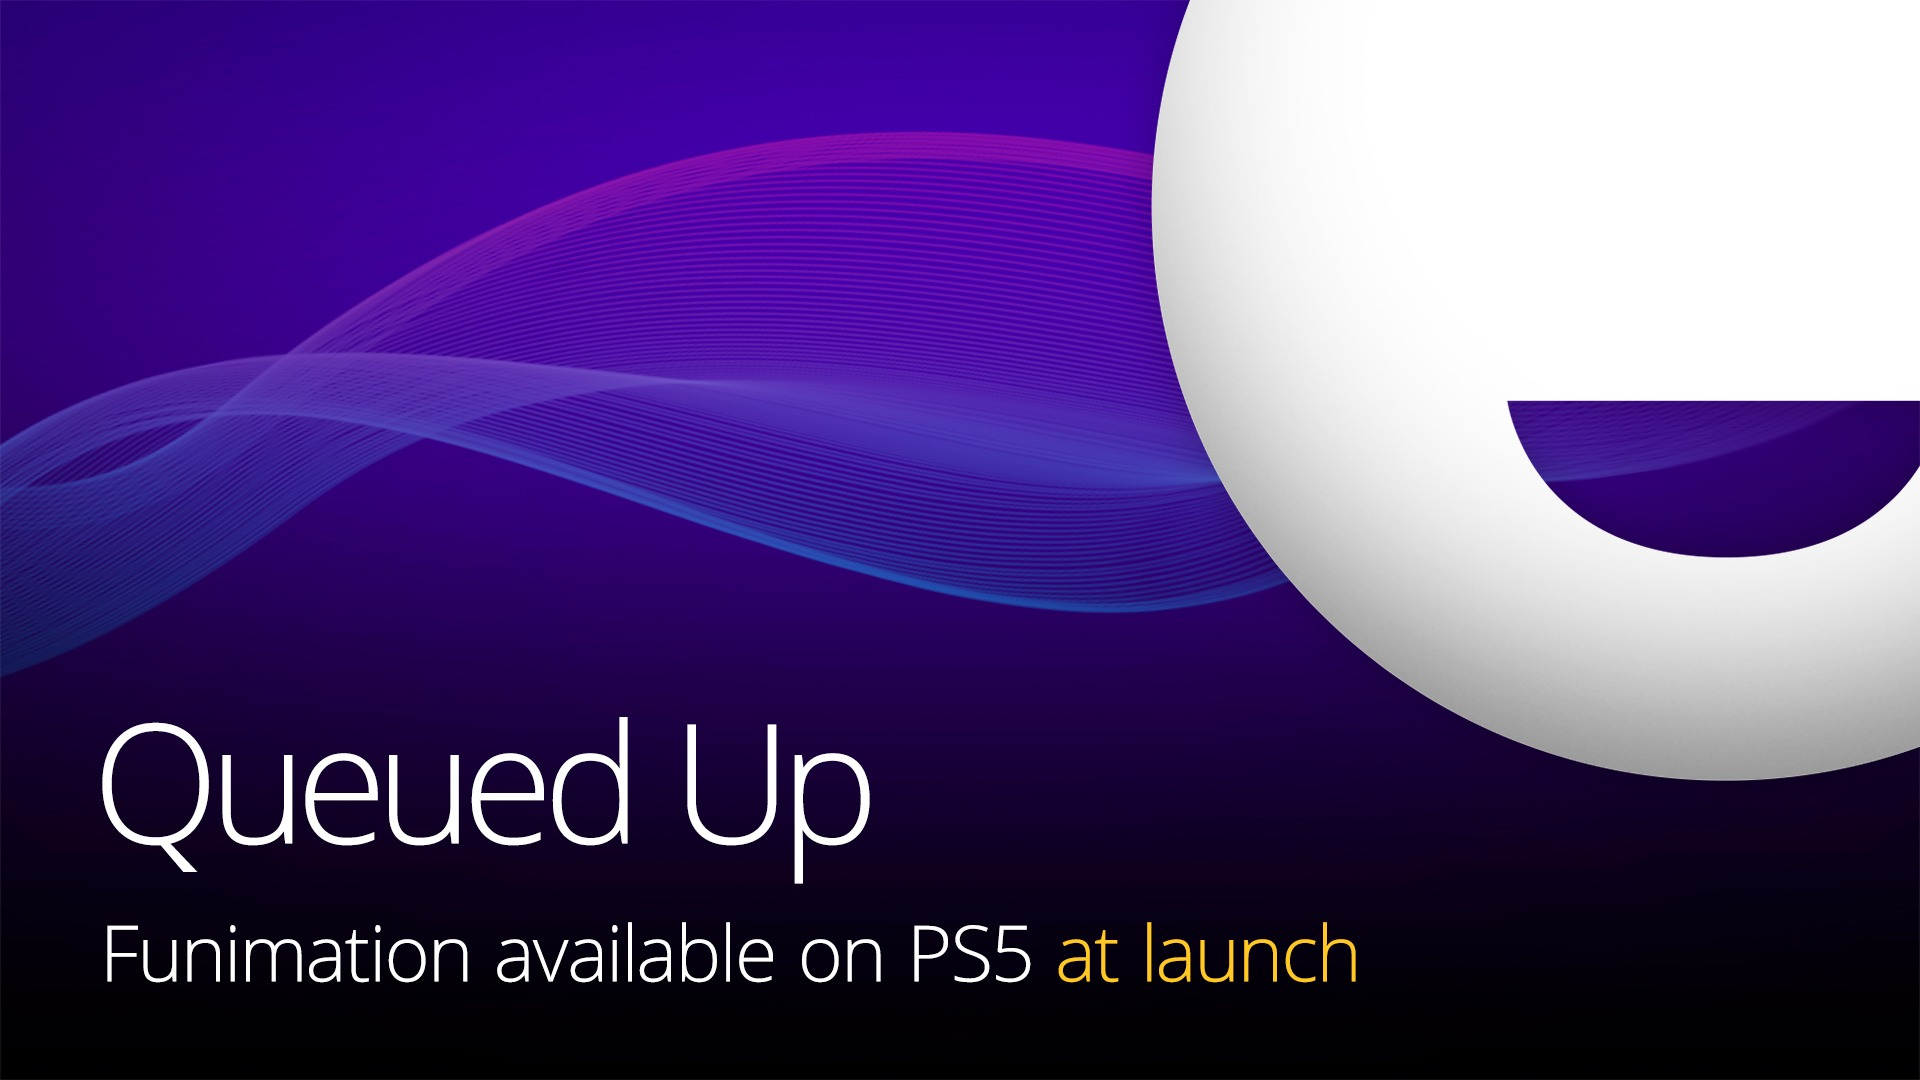 Funimation app on PS5